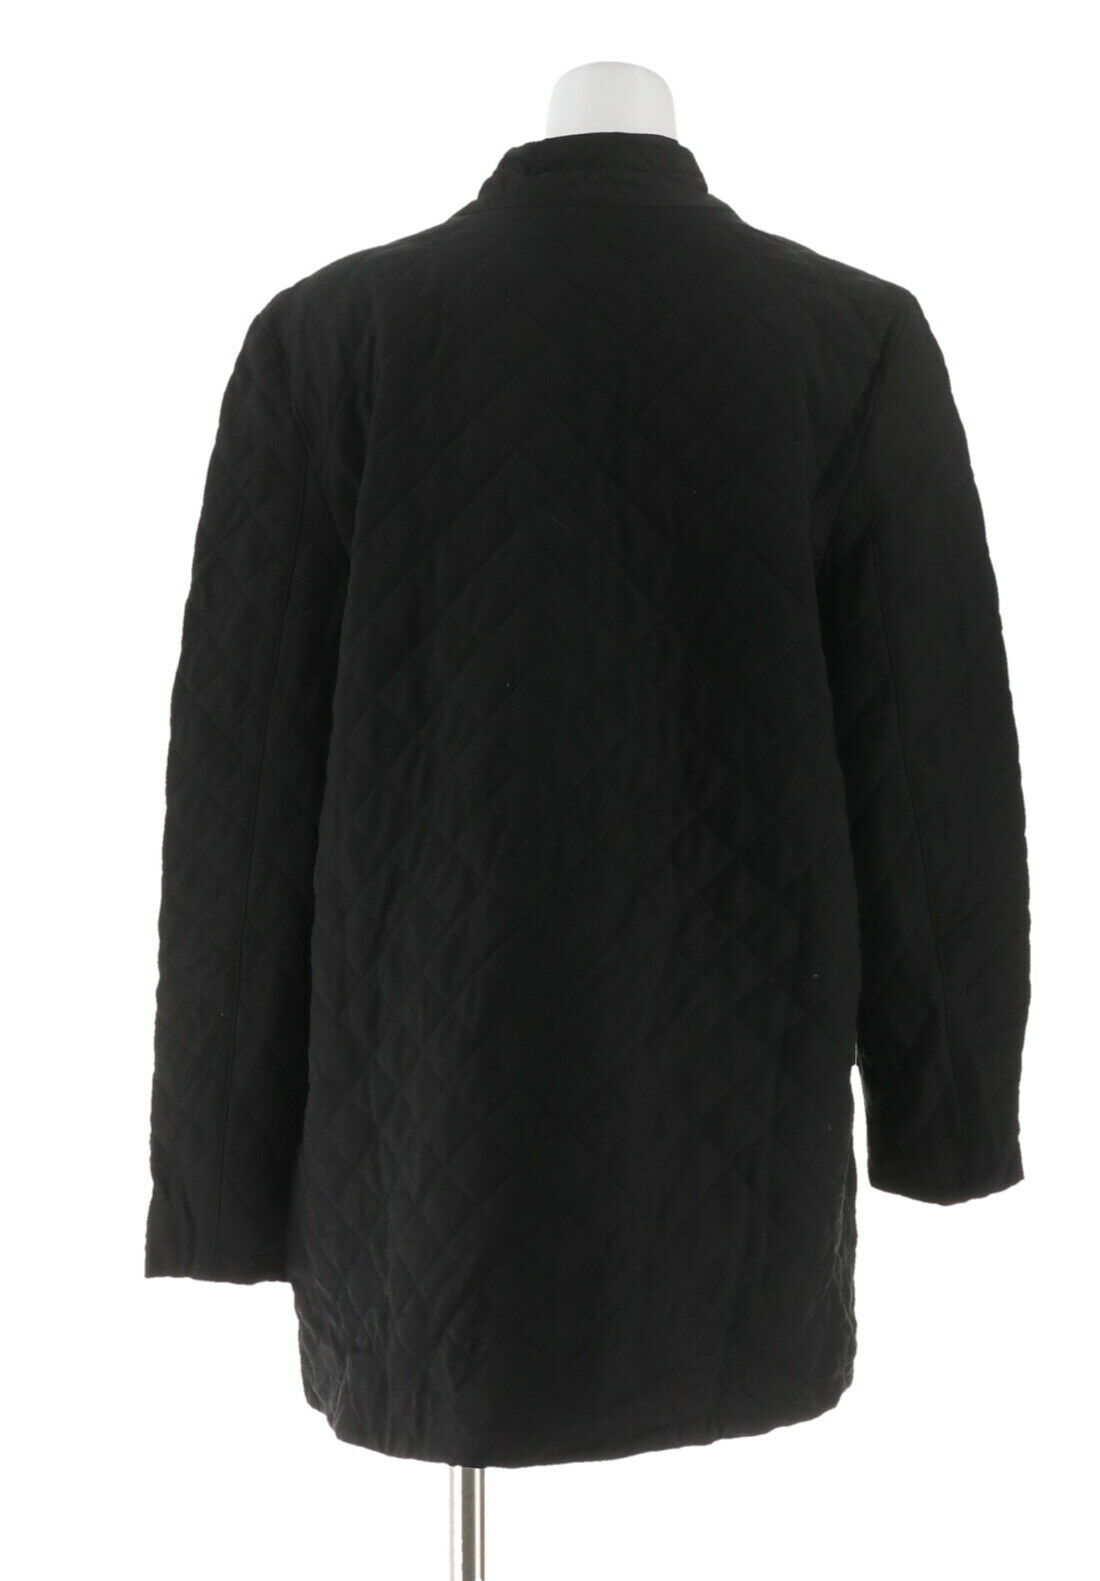 LOGO Lori Goldstein Faux Fur/& Quilted Jacket Black 20W NEW A297092